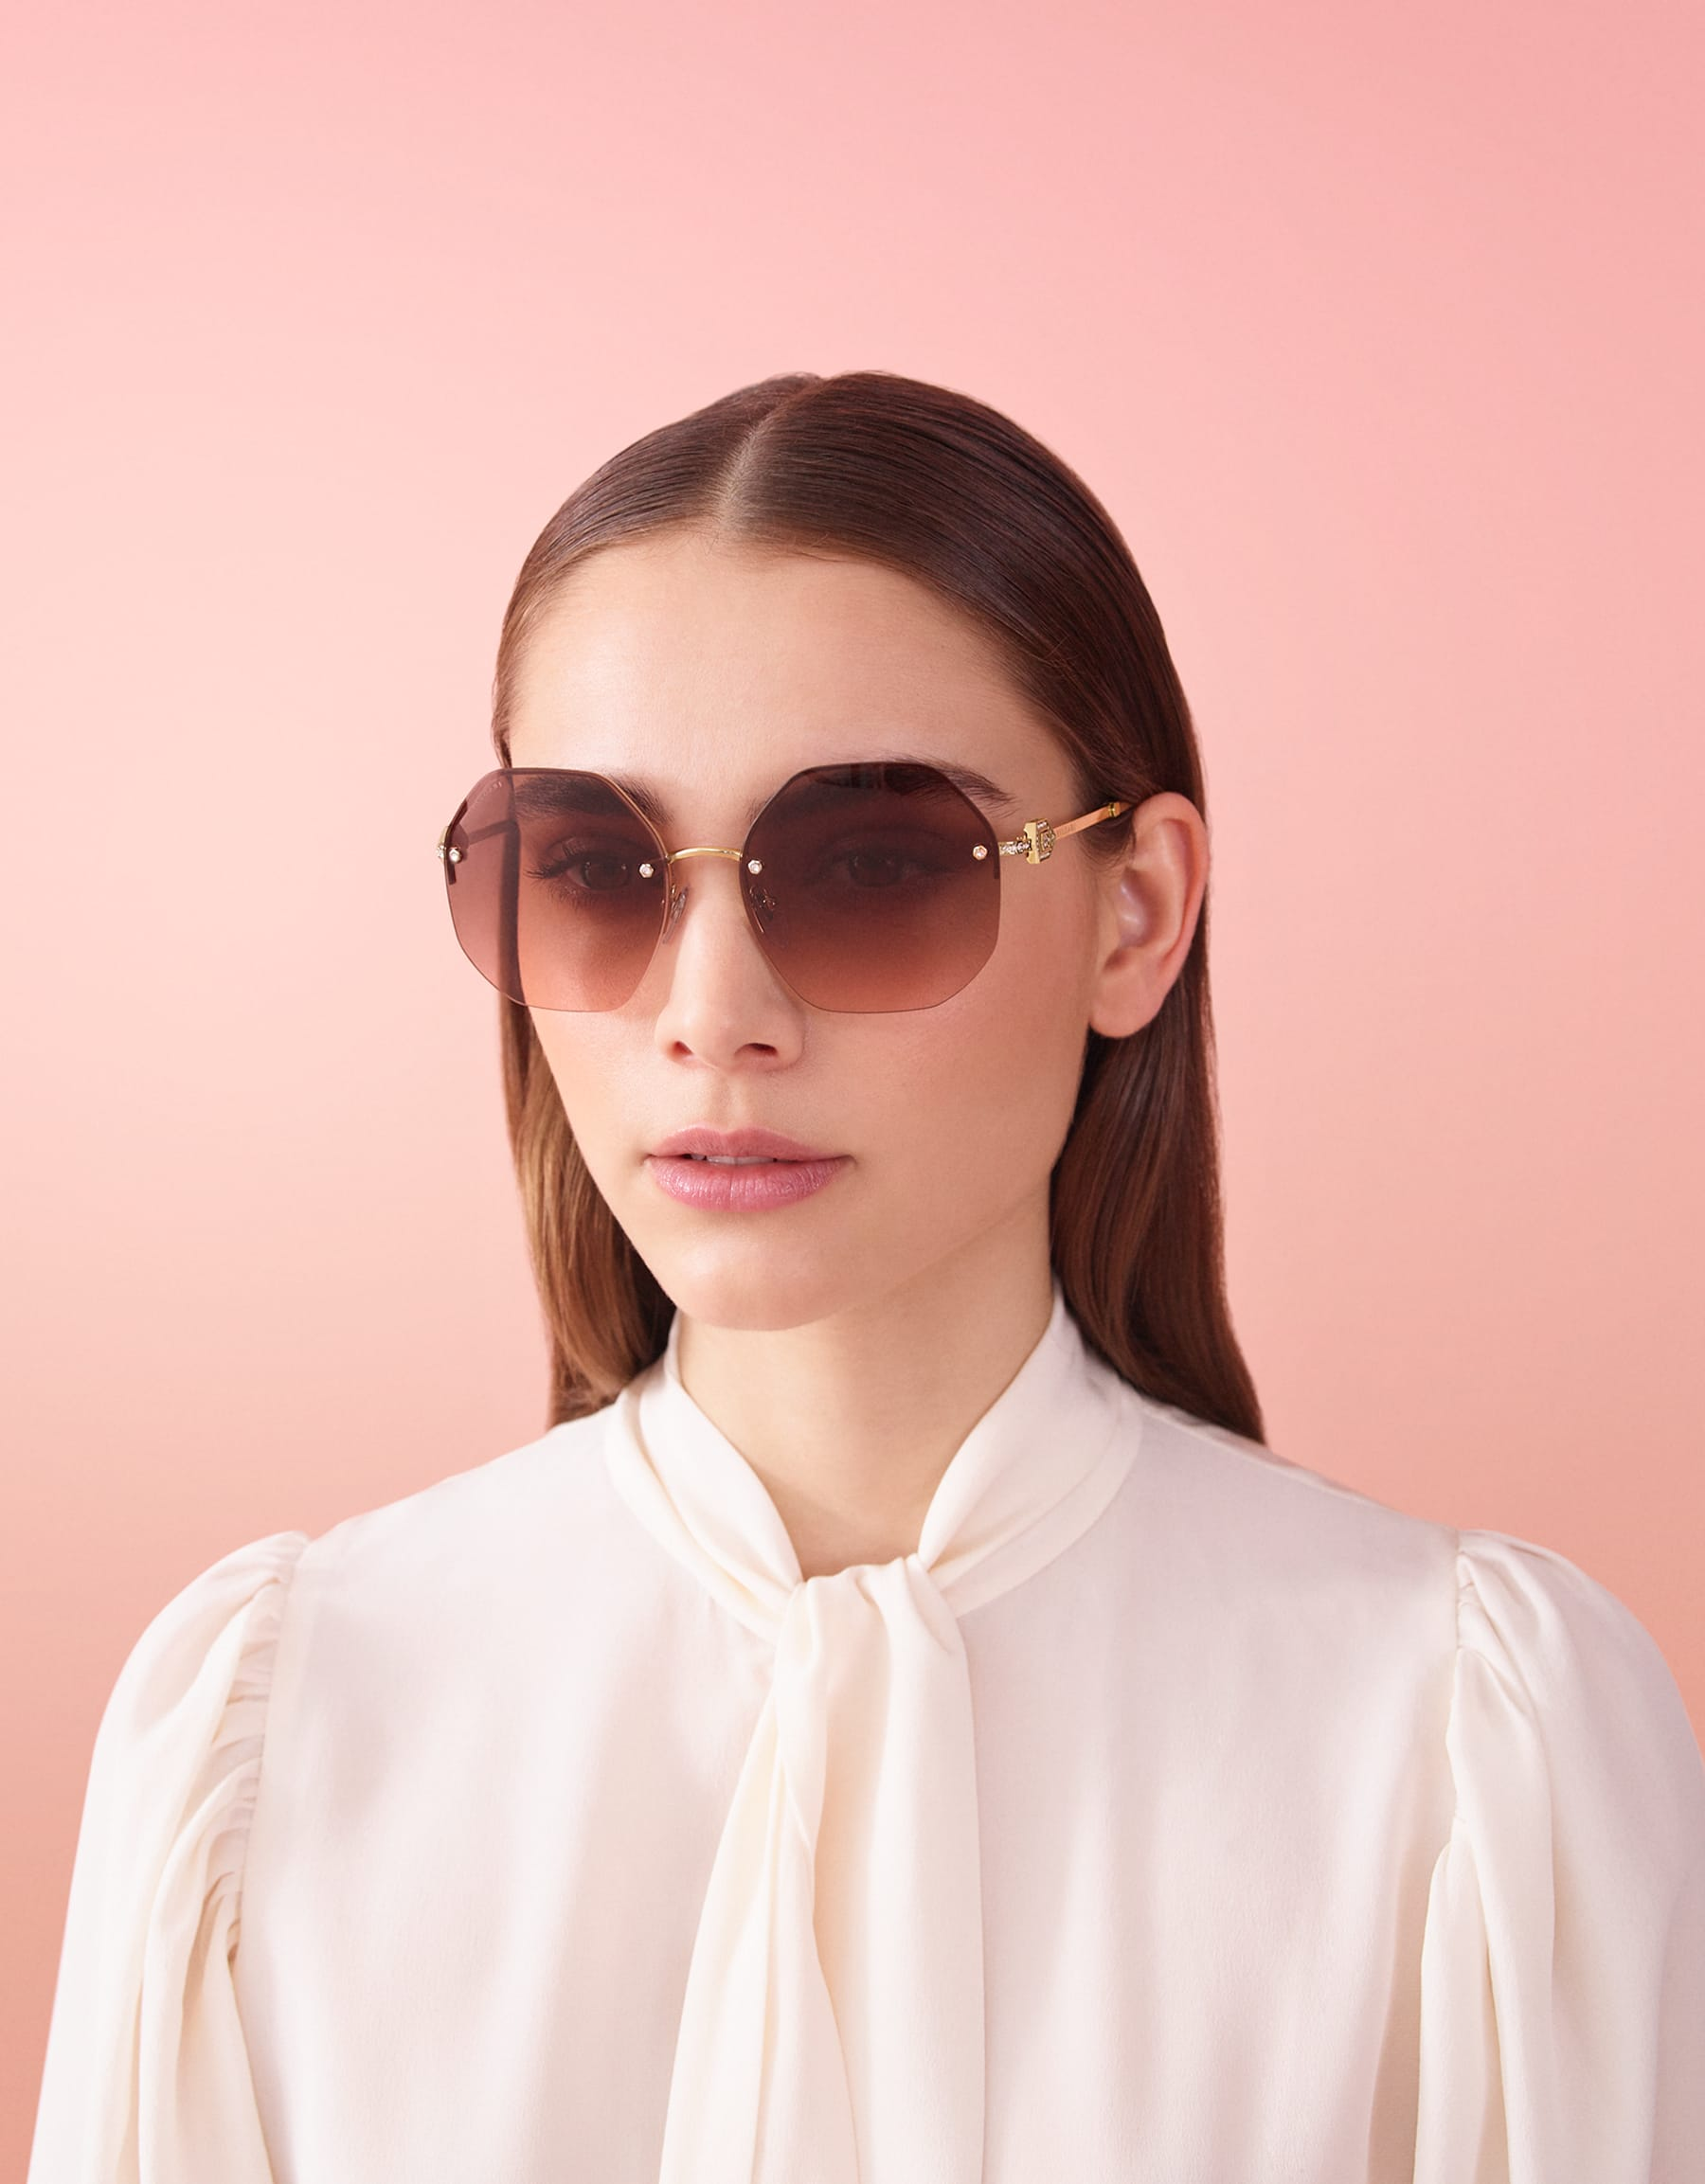 Bvlgari Serpenti oversized metal sunglasses with Serpenti openwork metal décor with crystals. 903854 image 3